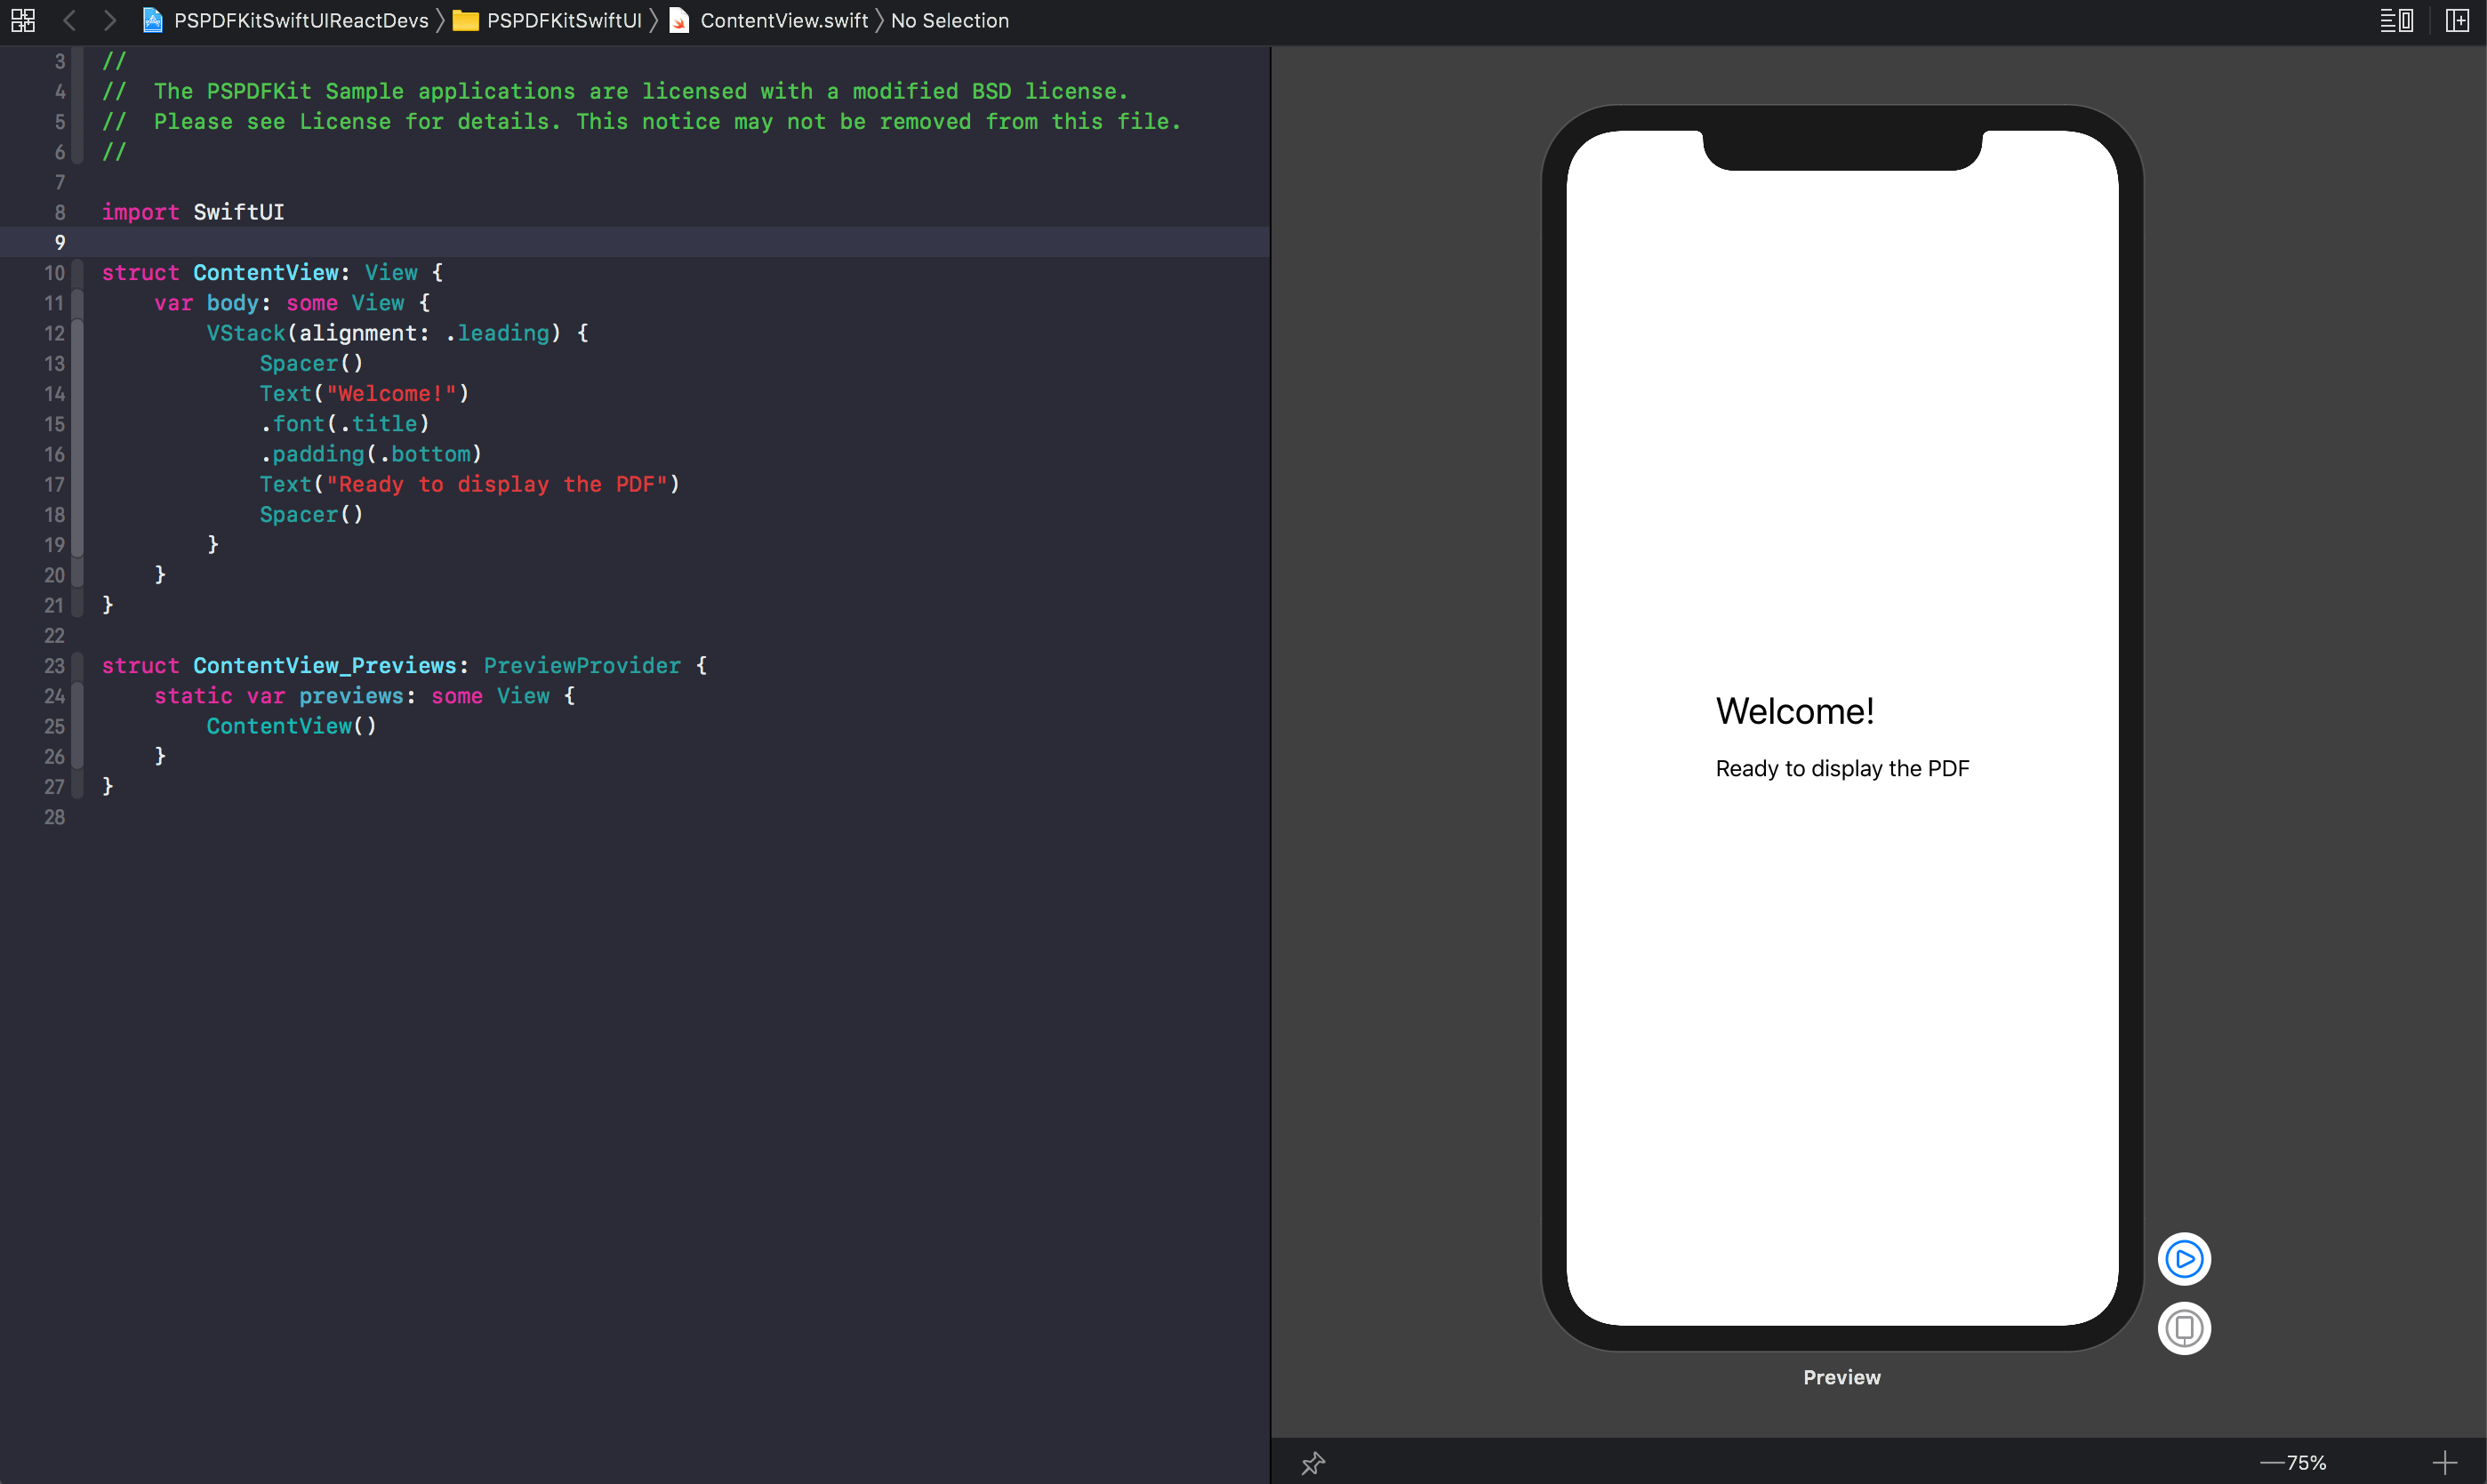 Design canvas on Xcode